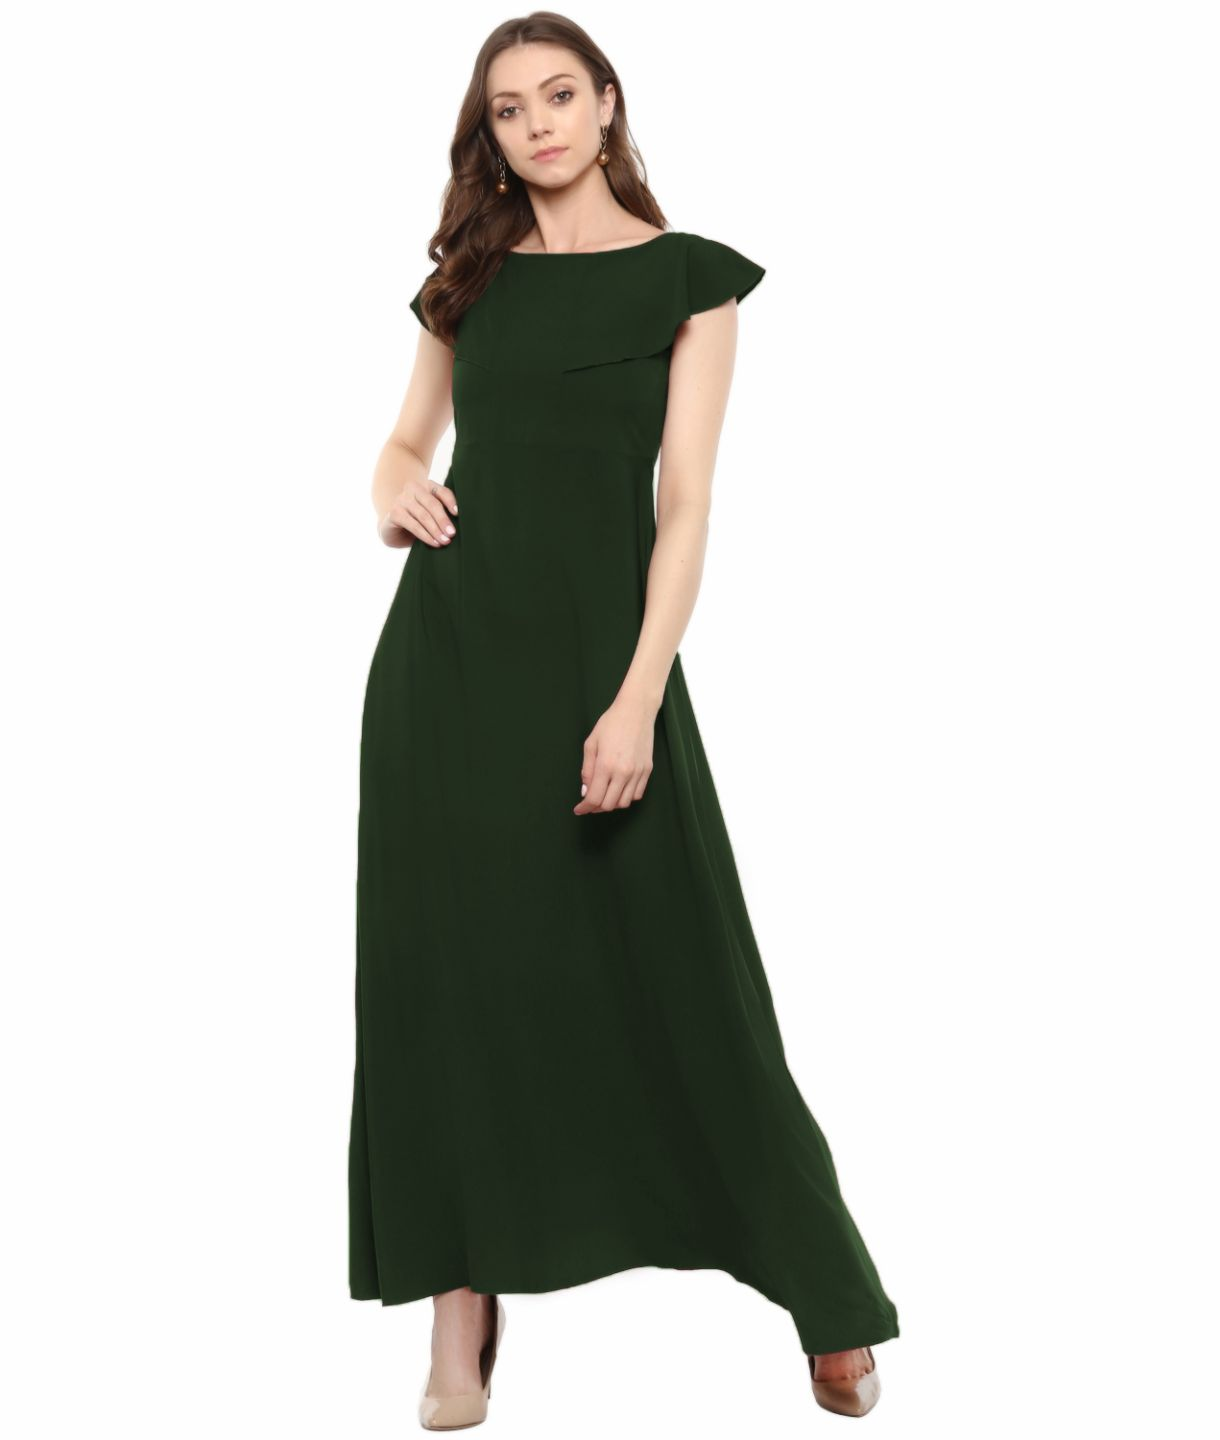 Uptownie Plus Army Green Solid Crepe Ruffled Maxi Dress/Gown